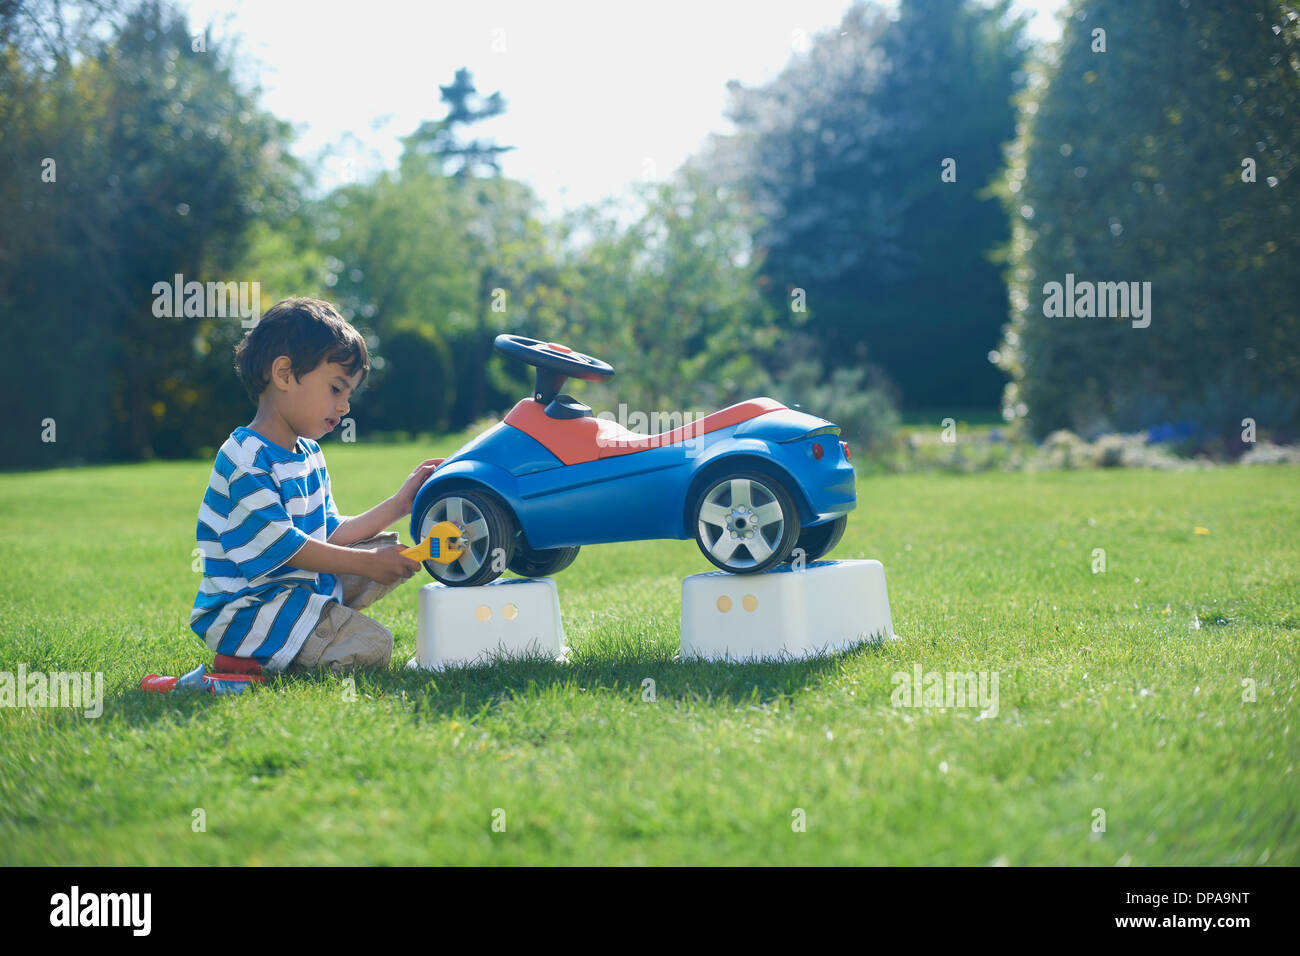 Boy pretending to fix toy car - Stock Image